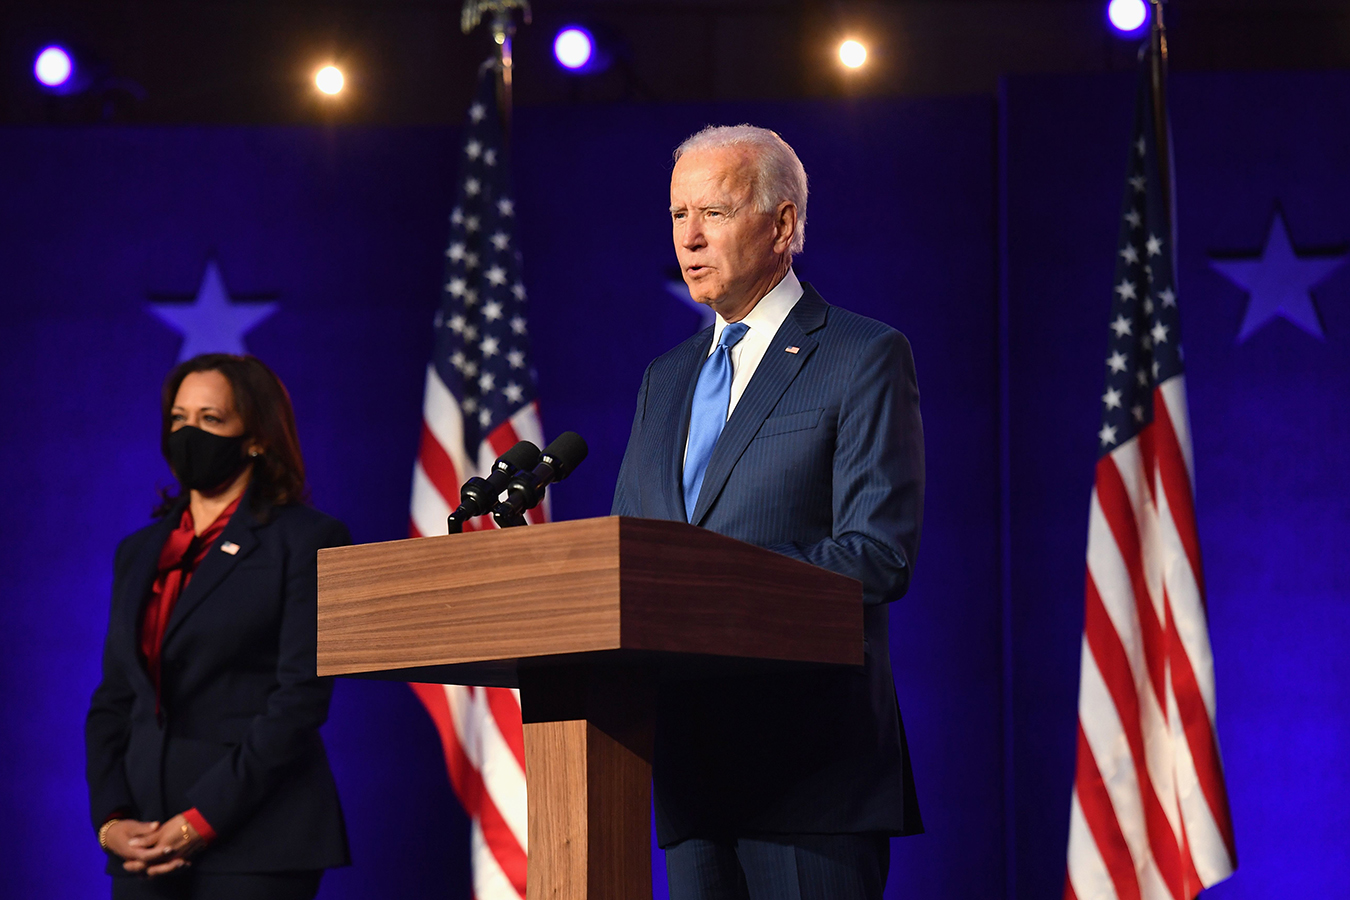 Biden Wins, but His Health Agenda Dims With GOP Likely to Hold Senate